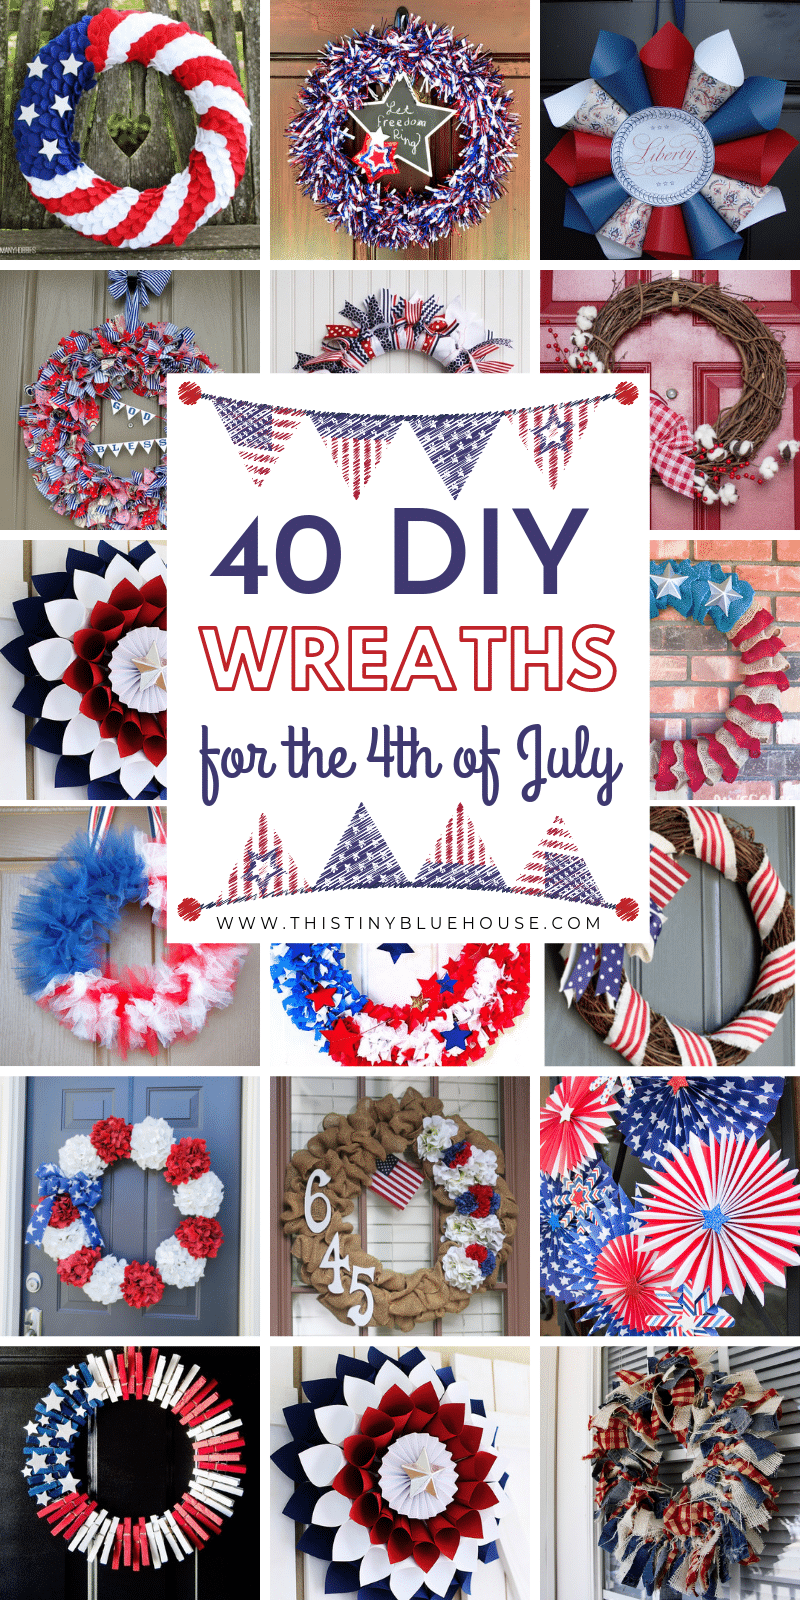 40 Patriotic Diy Dollar Store 4th Of July Wreaths This Tiny Blue House